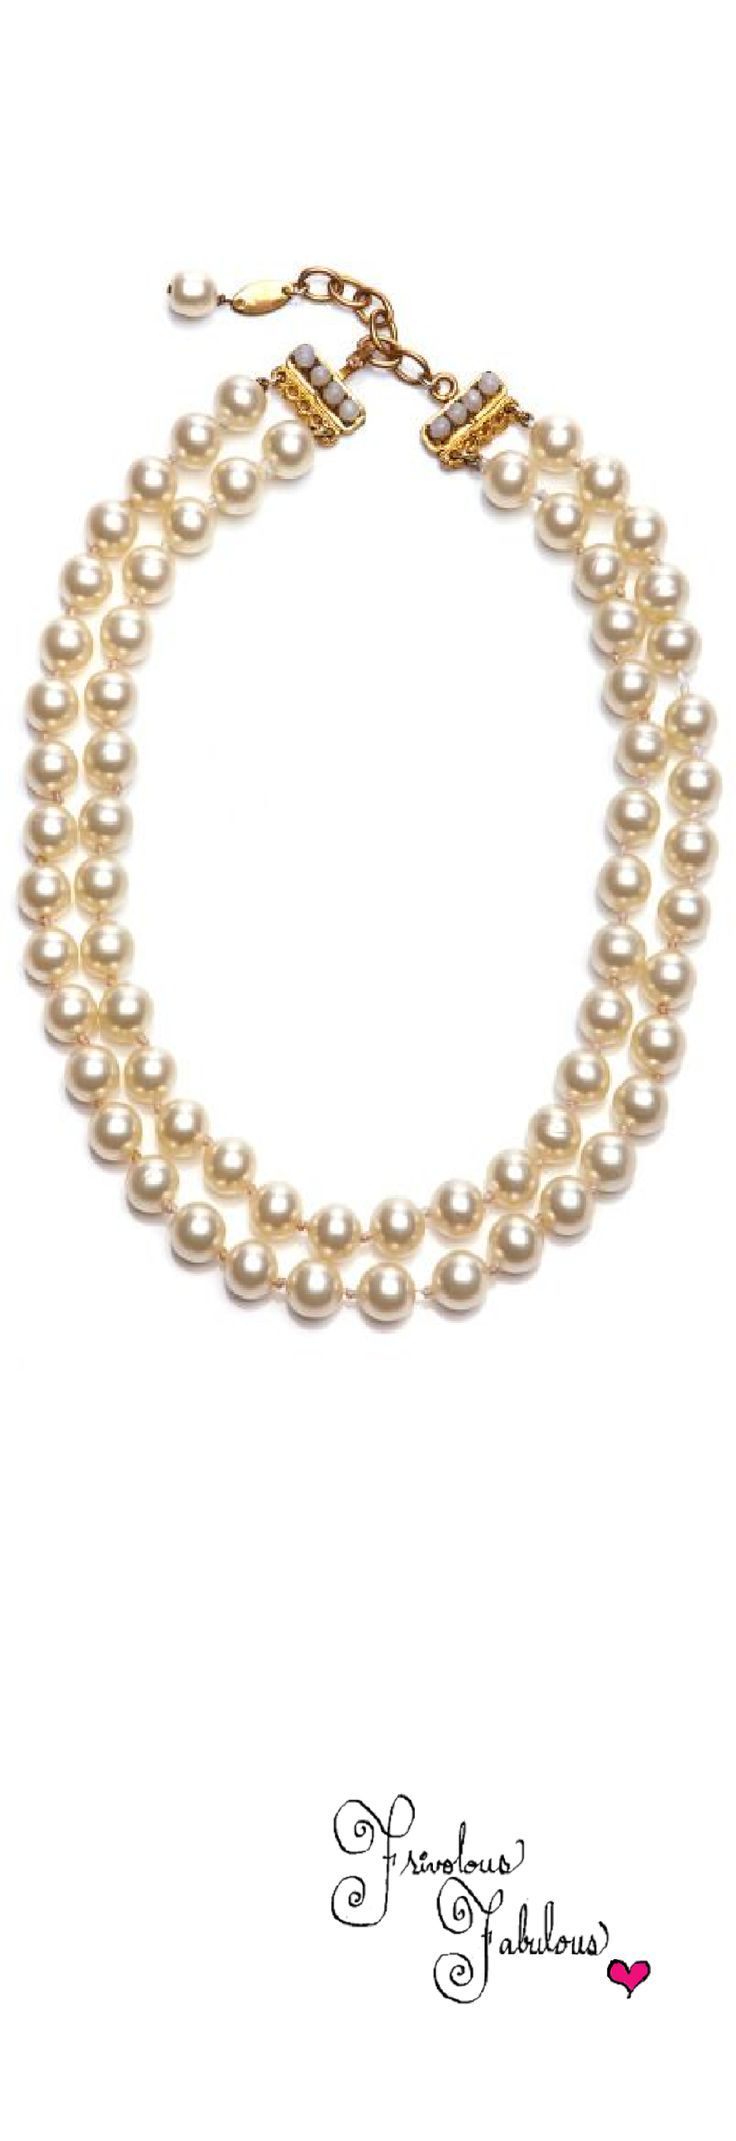 ~Frivolous Fabulous - Chanel Double Strand Pearl Necklace Vintage   House of Beccaria